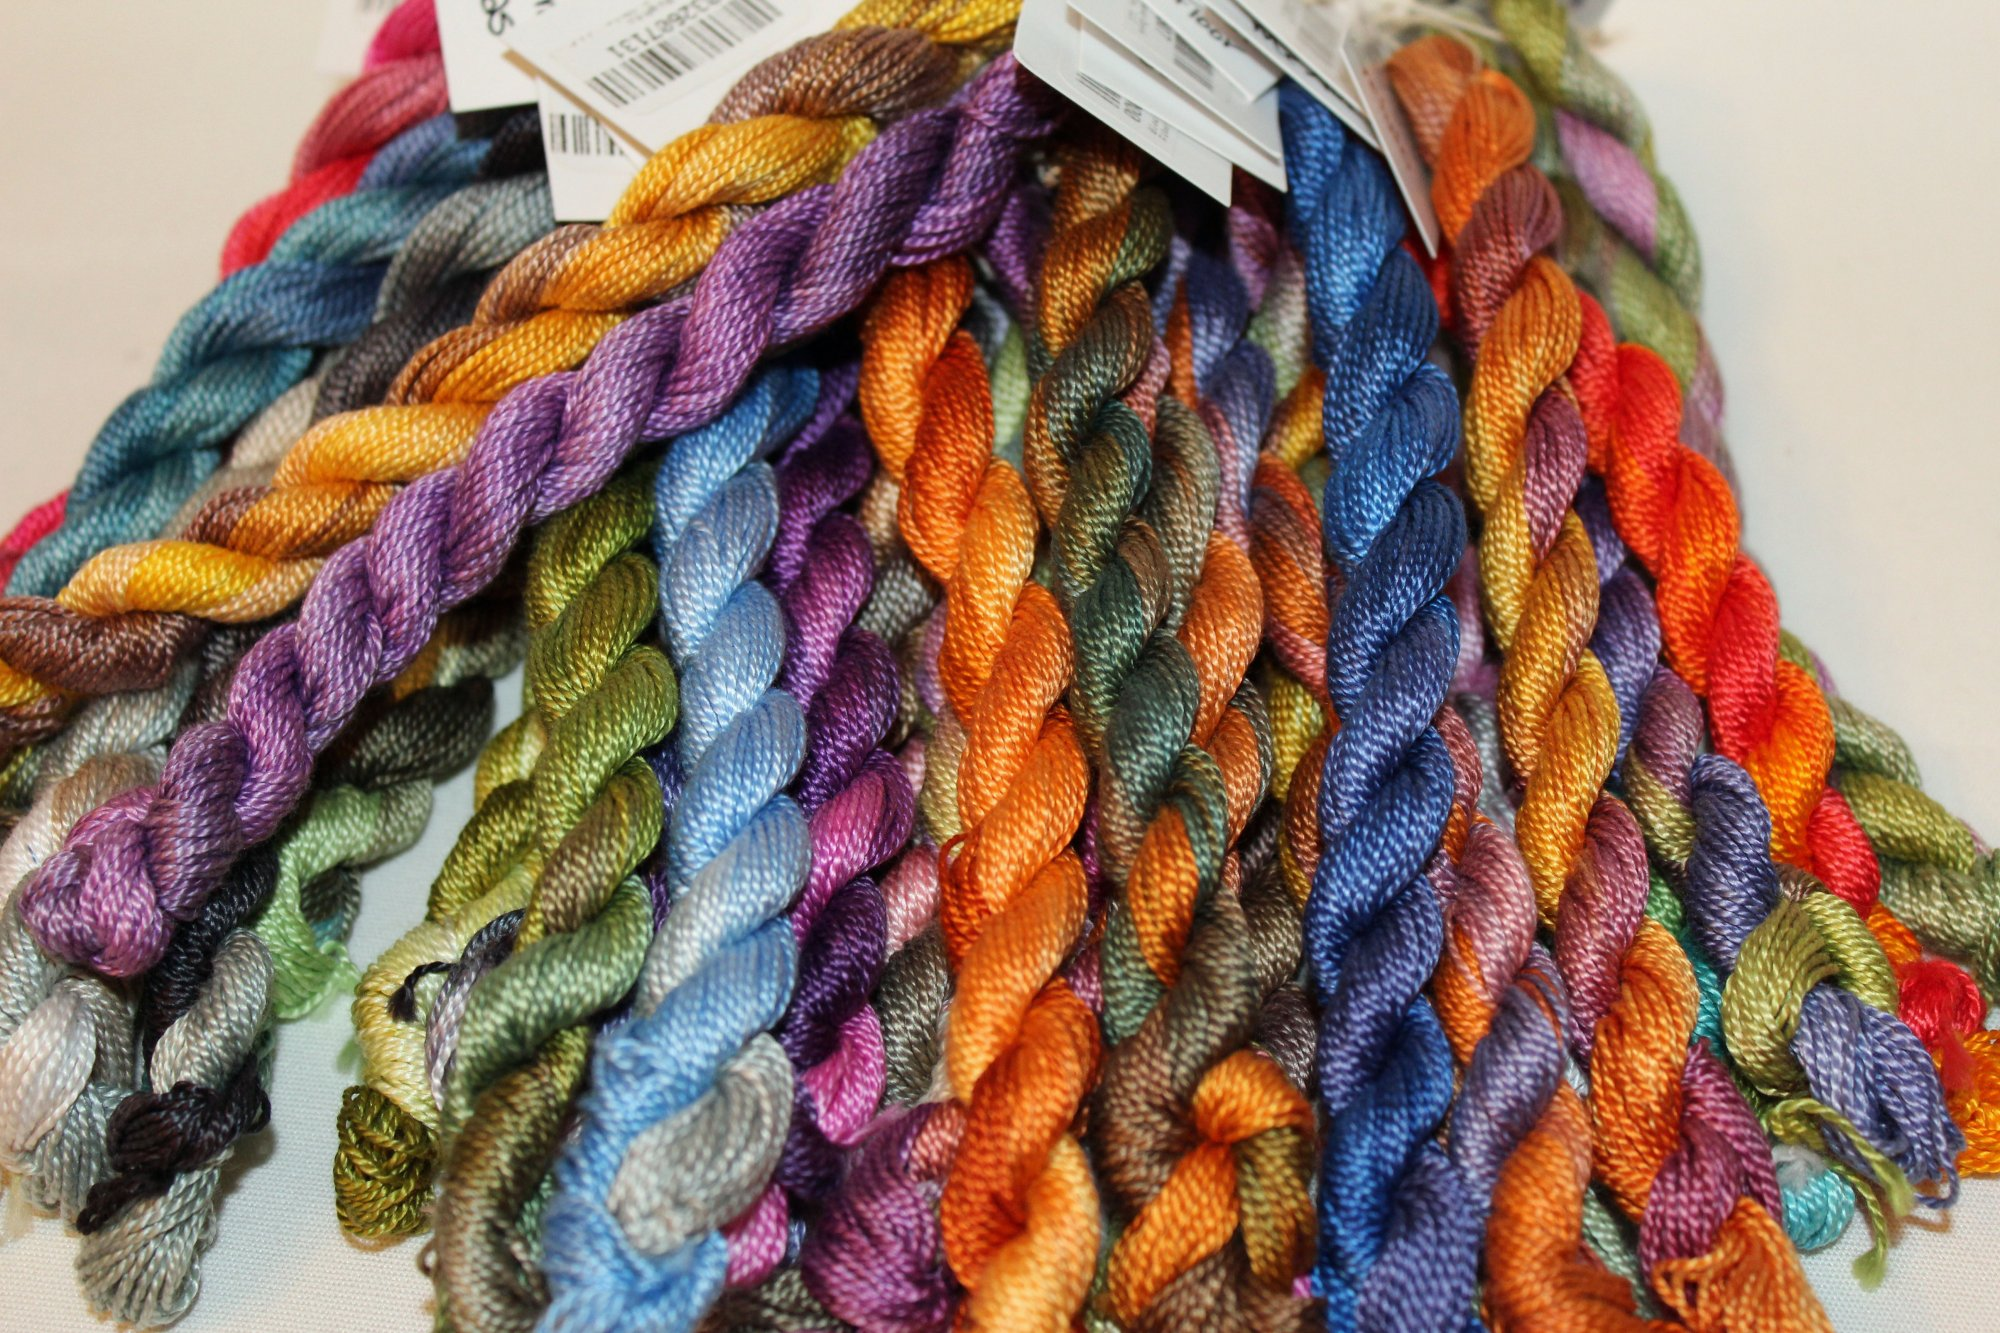 Full Set of Variegated Hand-dyed Size 5 Perle Cotton 41 colors